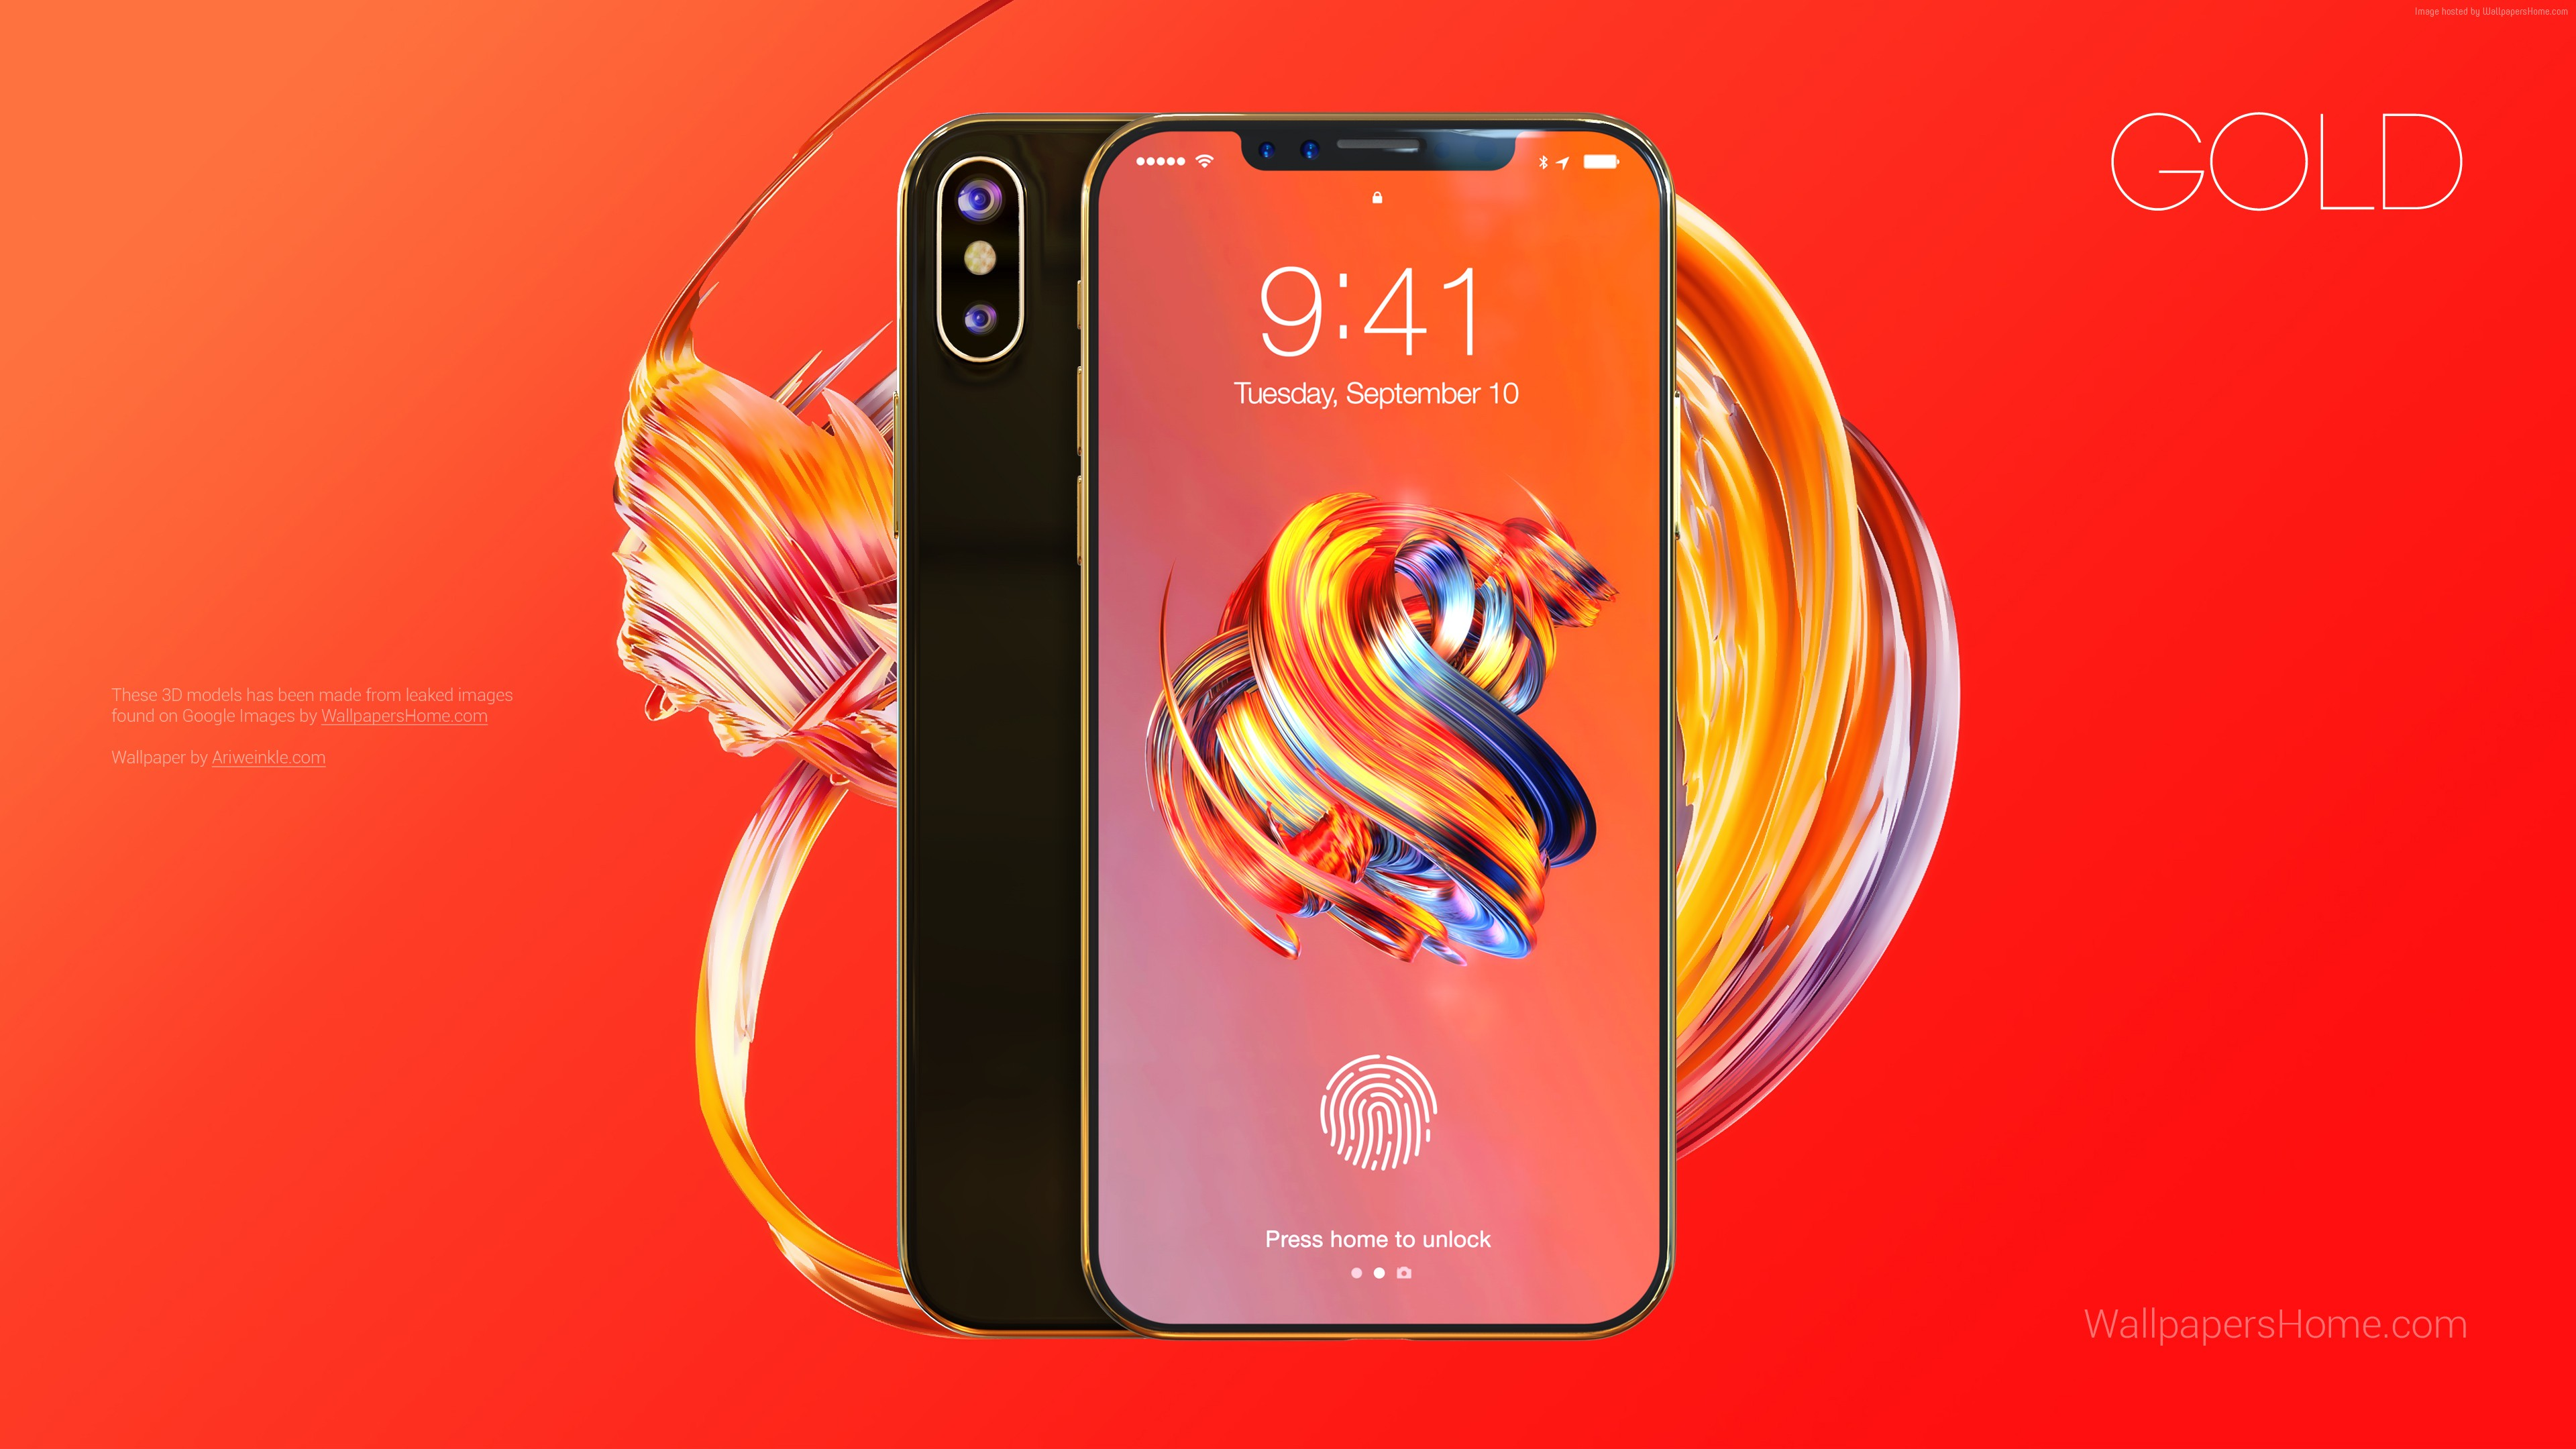 Wallpaper iPhone X, gold, 3D, leaked, WWDC 2017, 4k, Hi-Tech